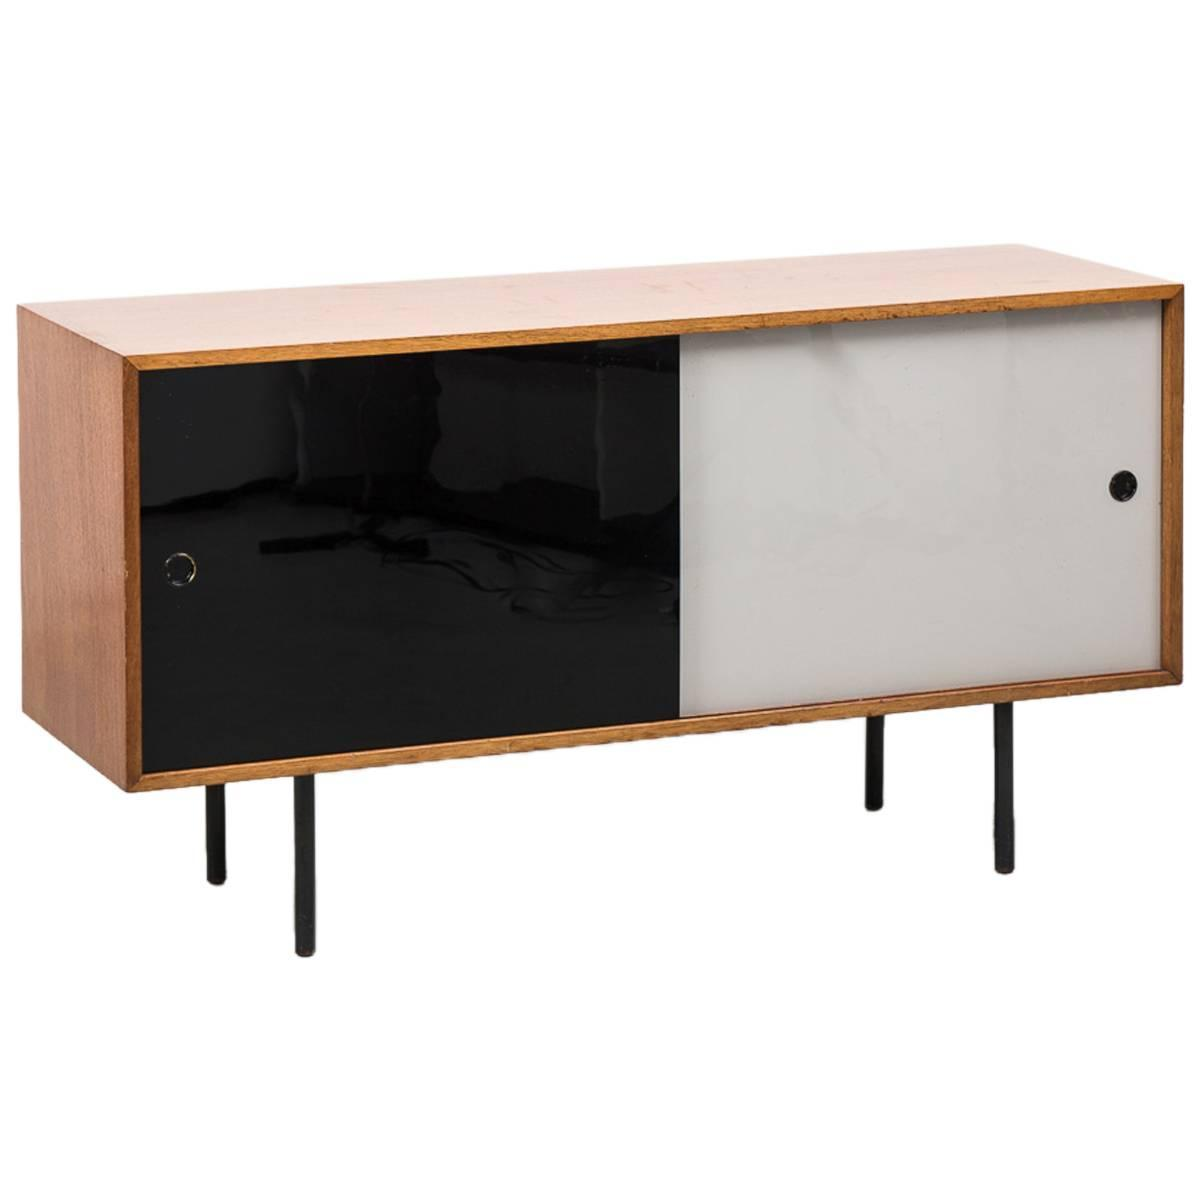 robin day interplan sideboard for hille uk 1950s at 1stdibs